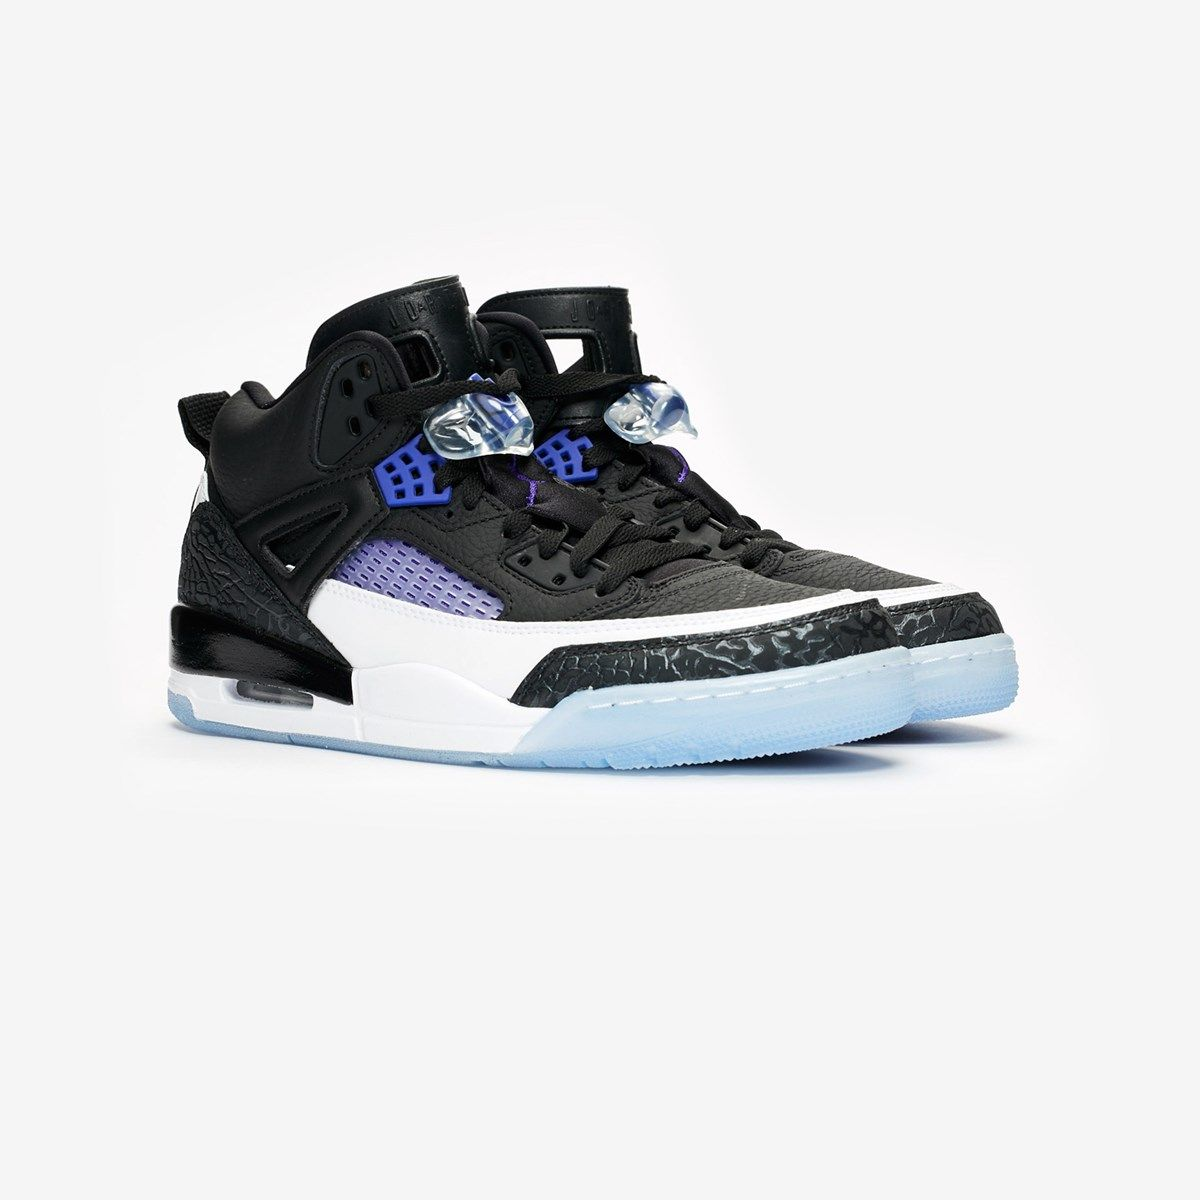 purchase cheap 87c5d a0733 Air Jordan Flight 23 RST 512234-110 (9)   Concords Jordans!